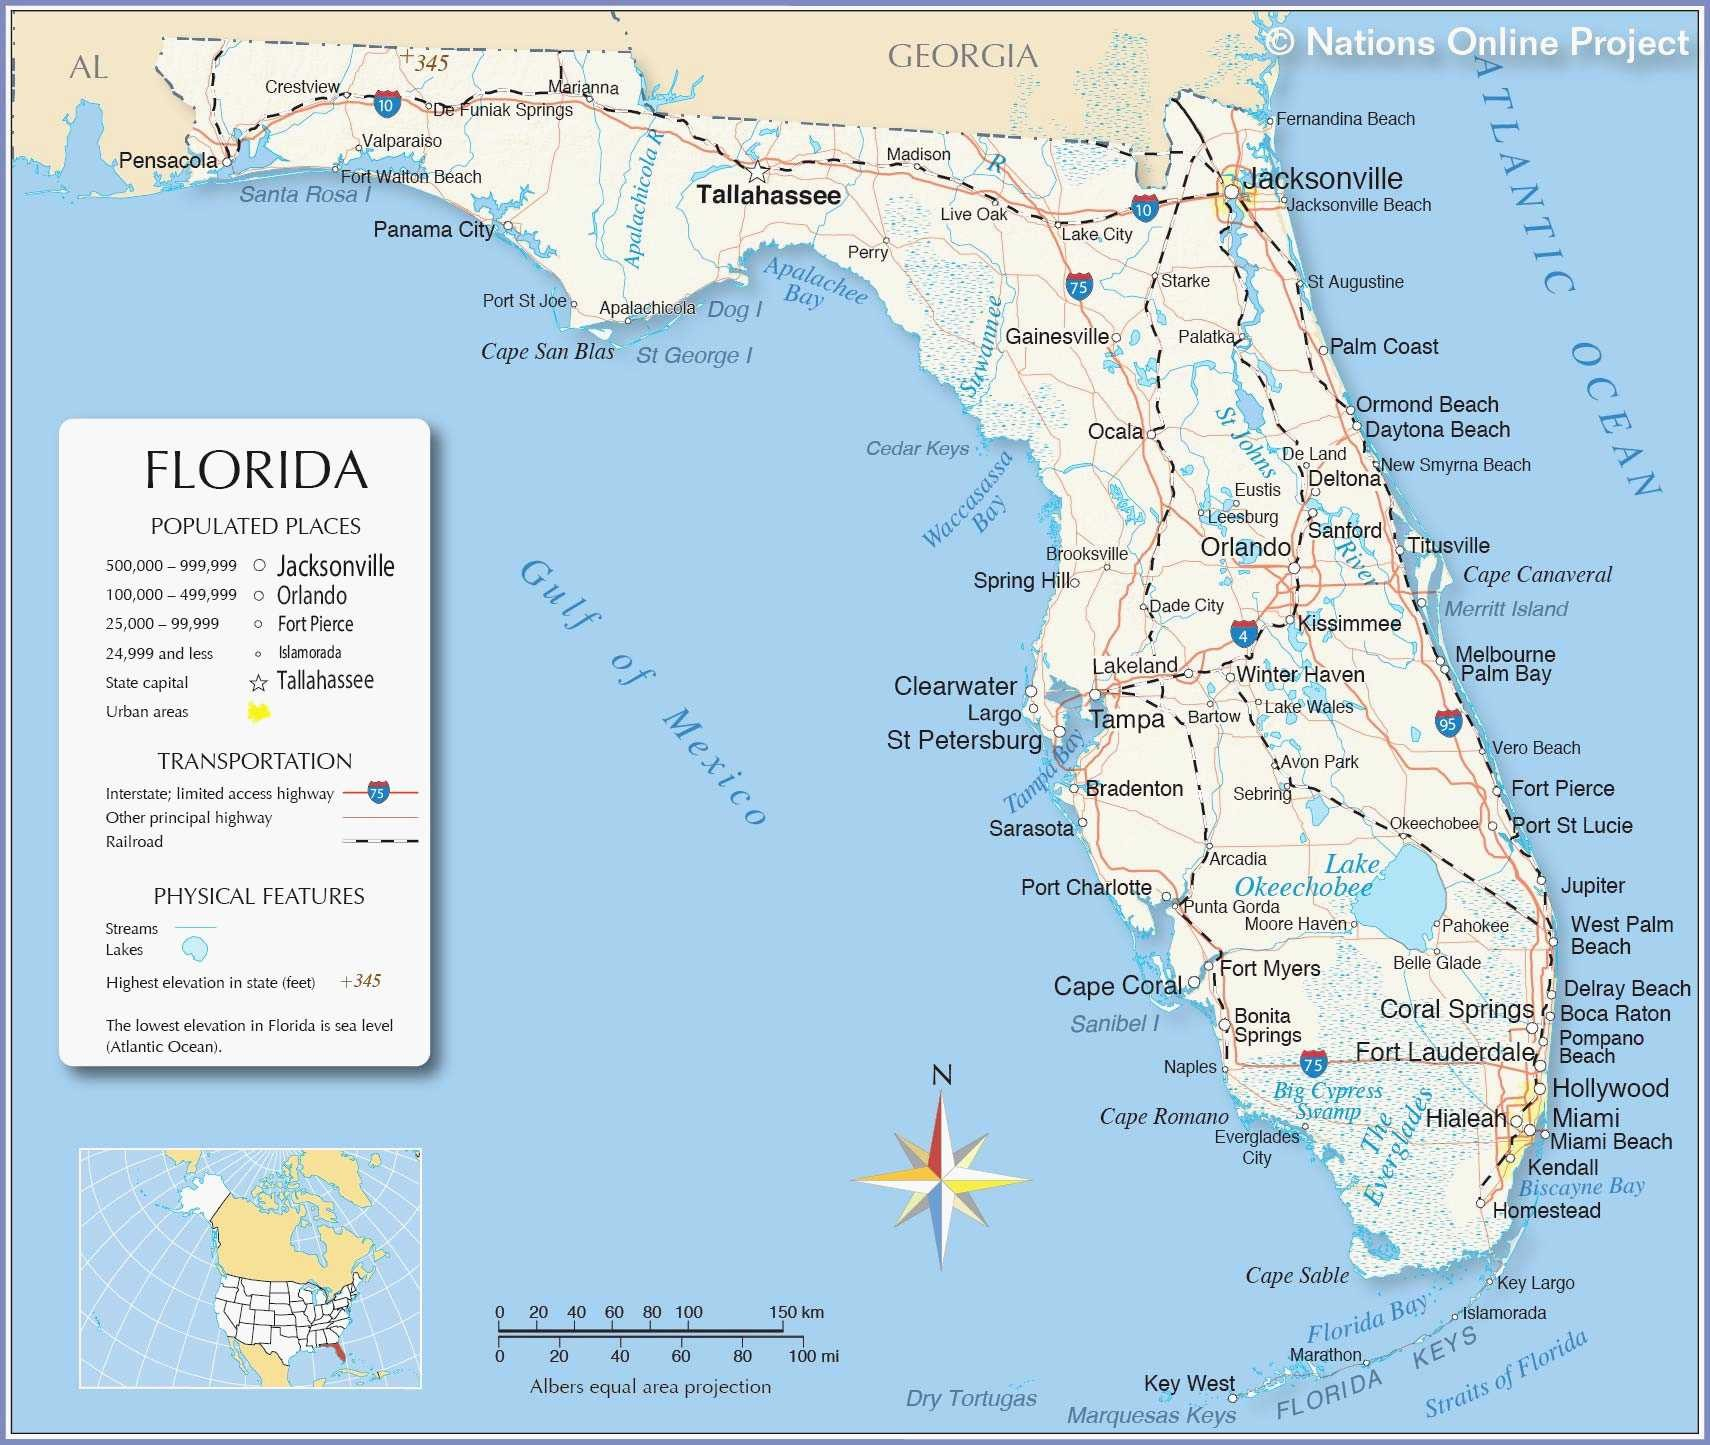 United States Map Orlando Florida Valid Great Clearwater Beach - Plant City Florida Map